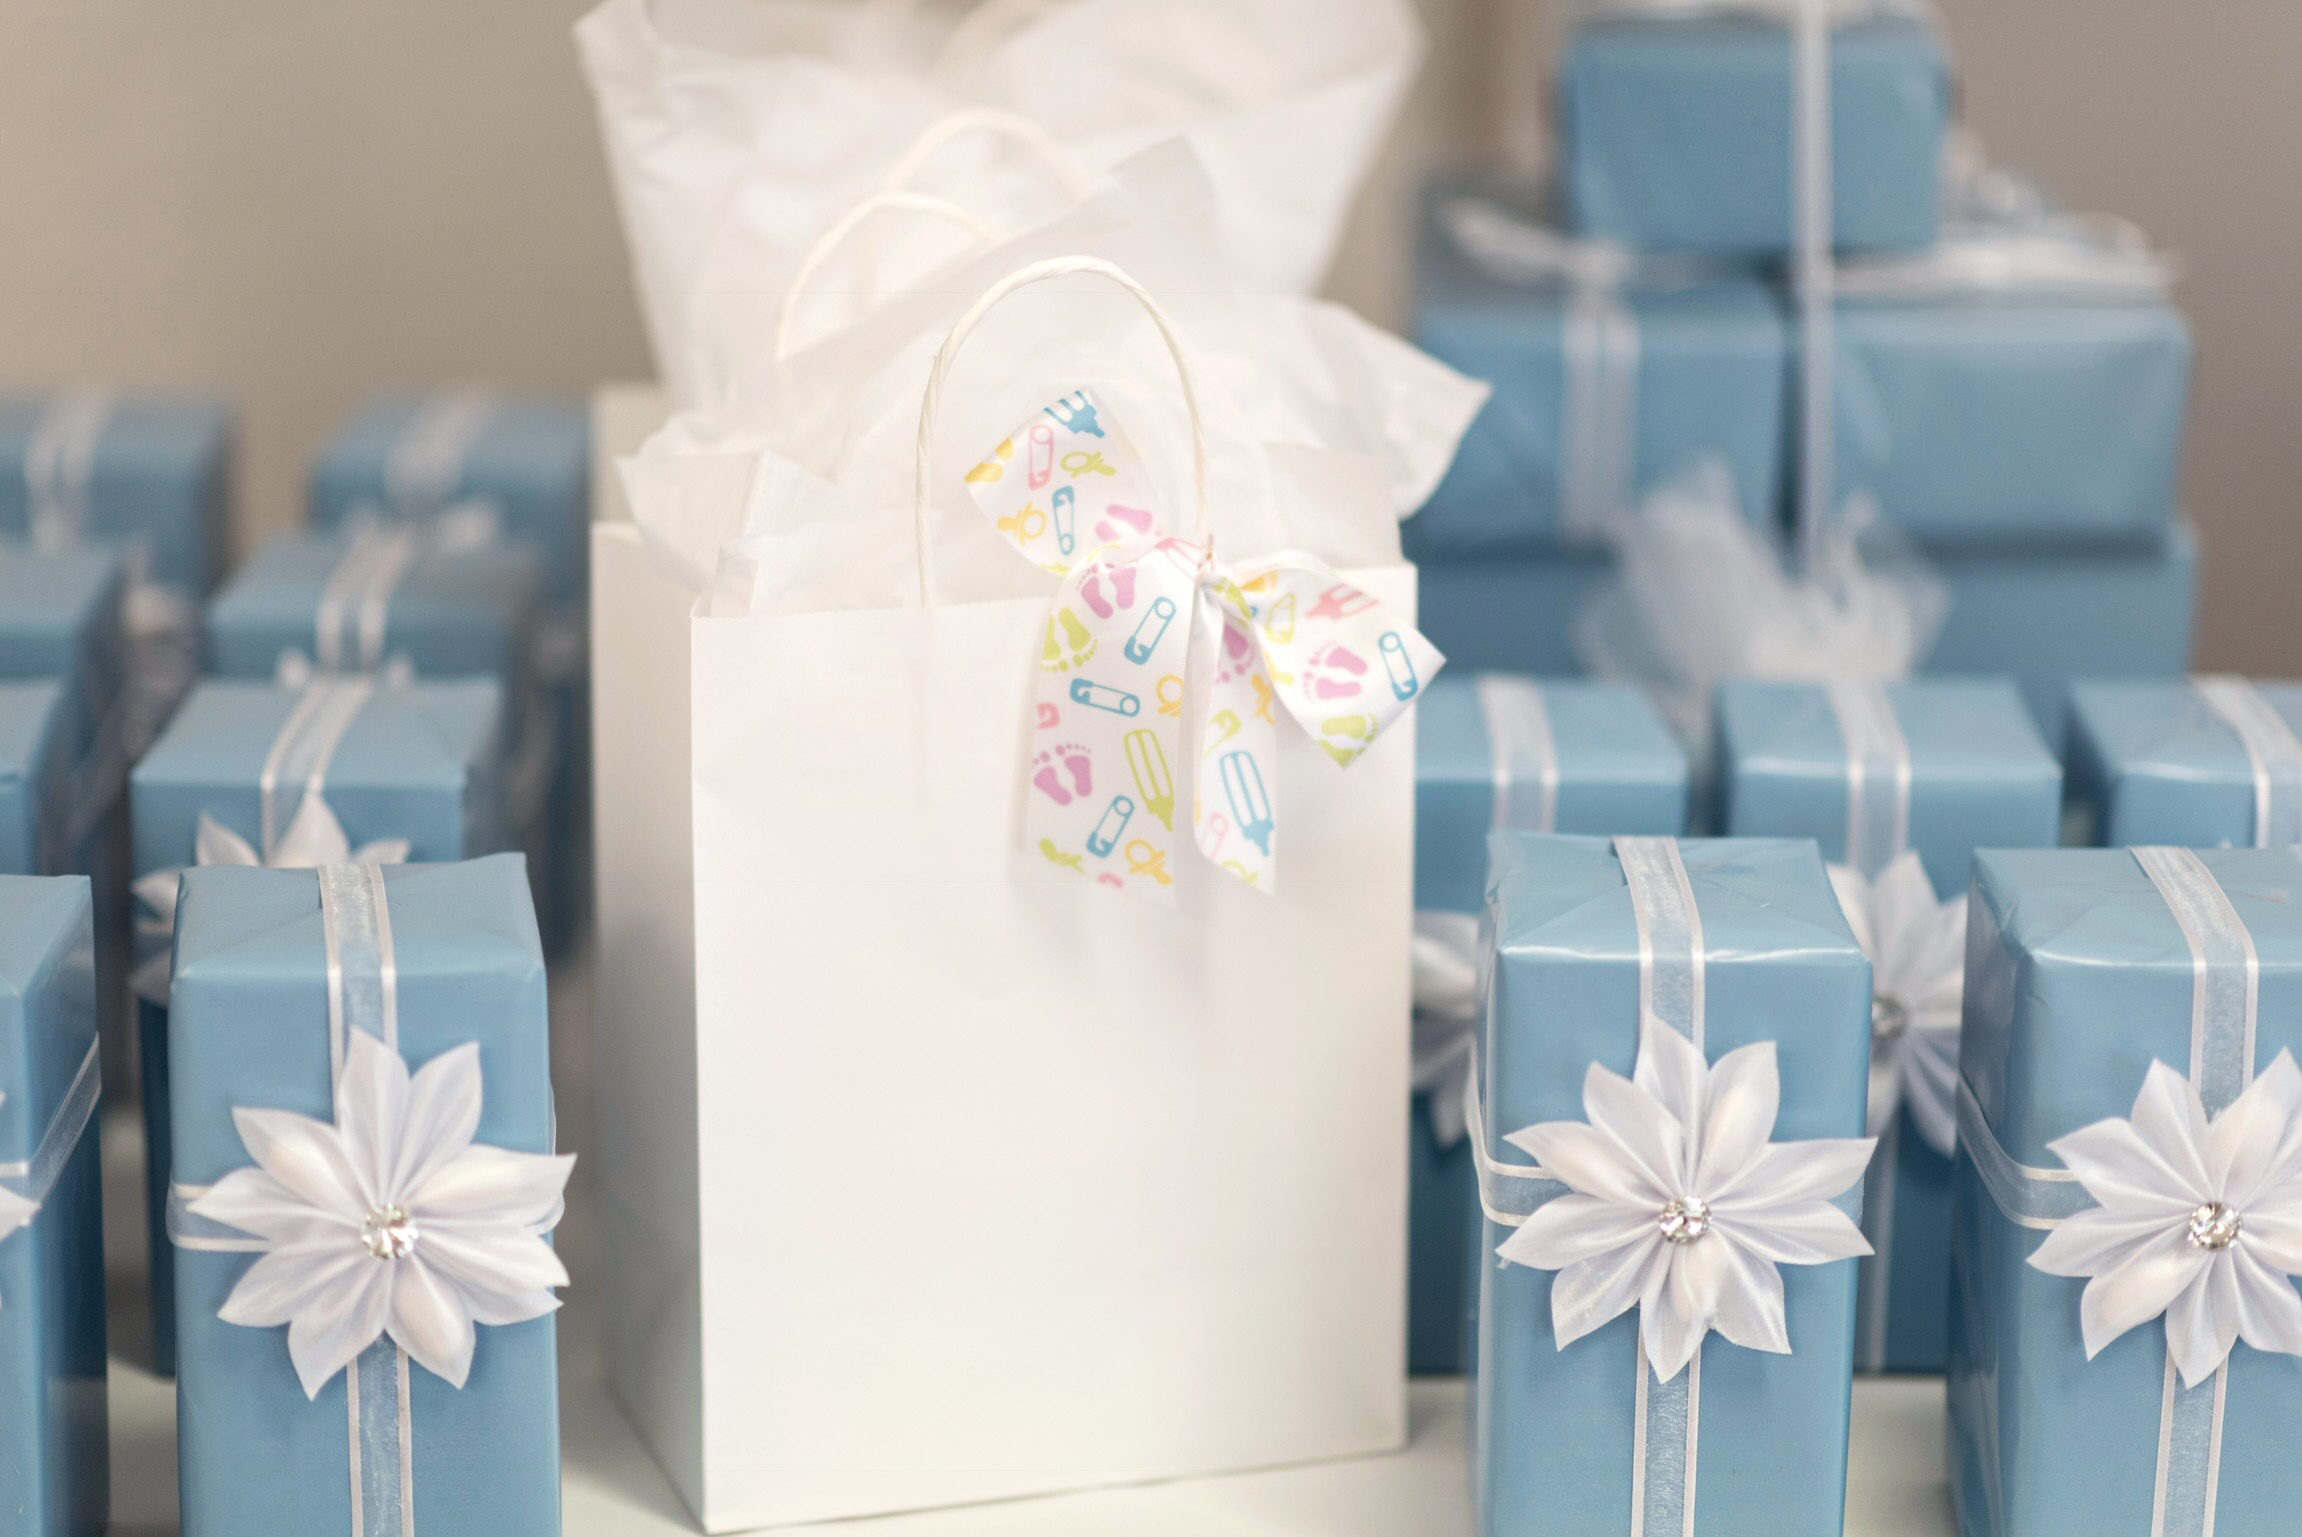 My mom did such an amazing job packaging the shower favours!! They look so perfect! The favours were ring holders and candle holders from Bowring.